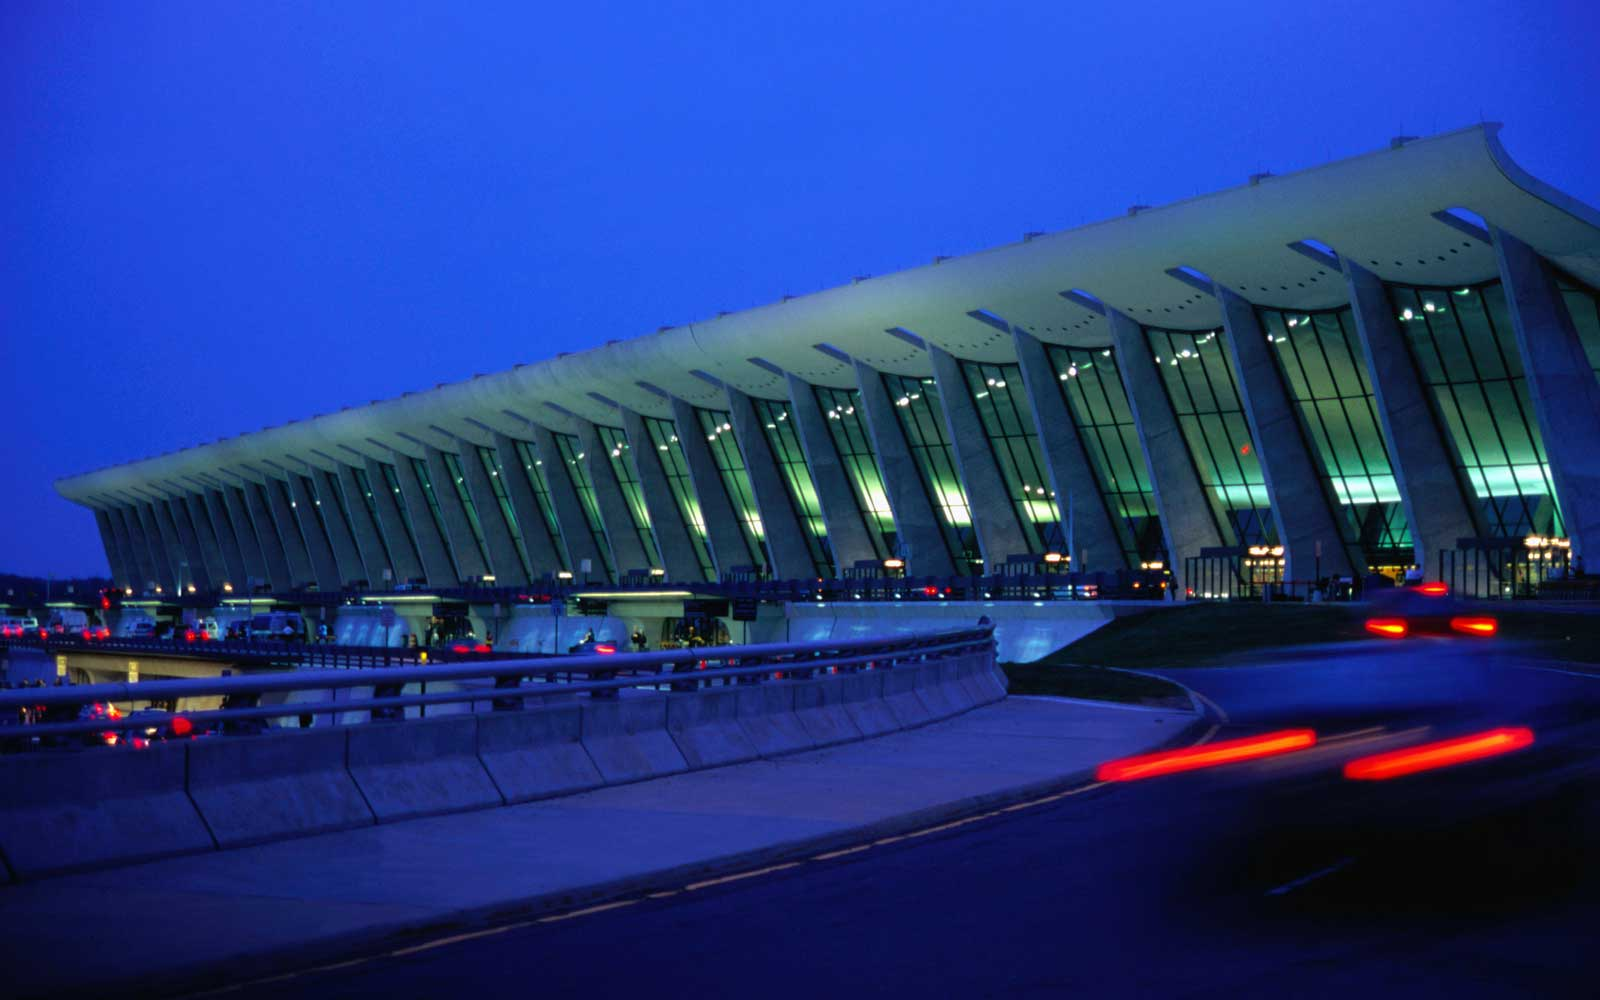 Reagan Airport in D.C. Is Closing for Trump's 4th of July Event